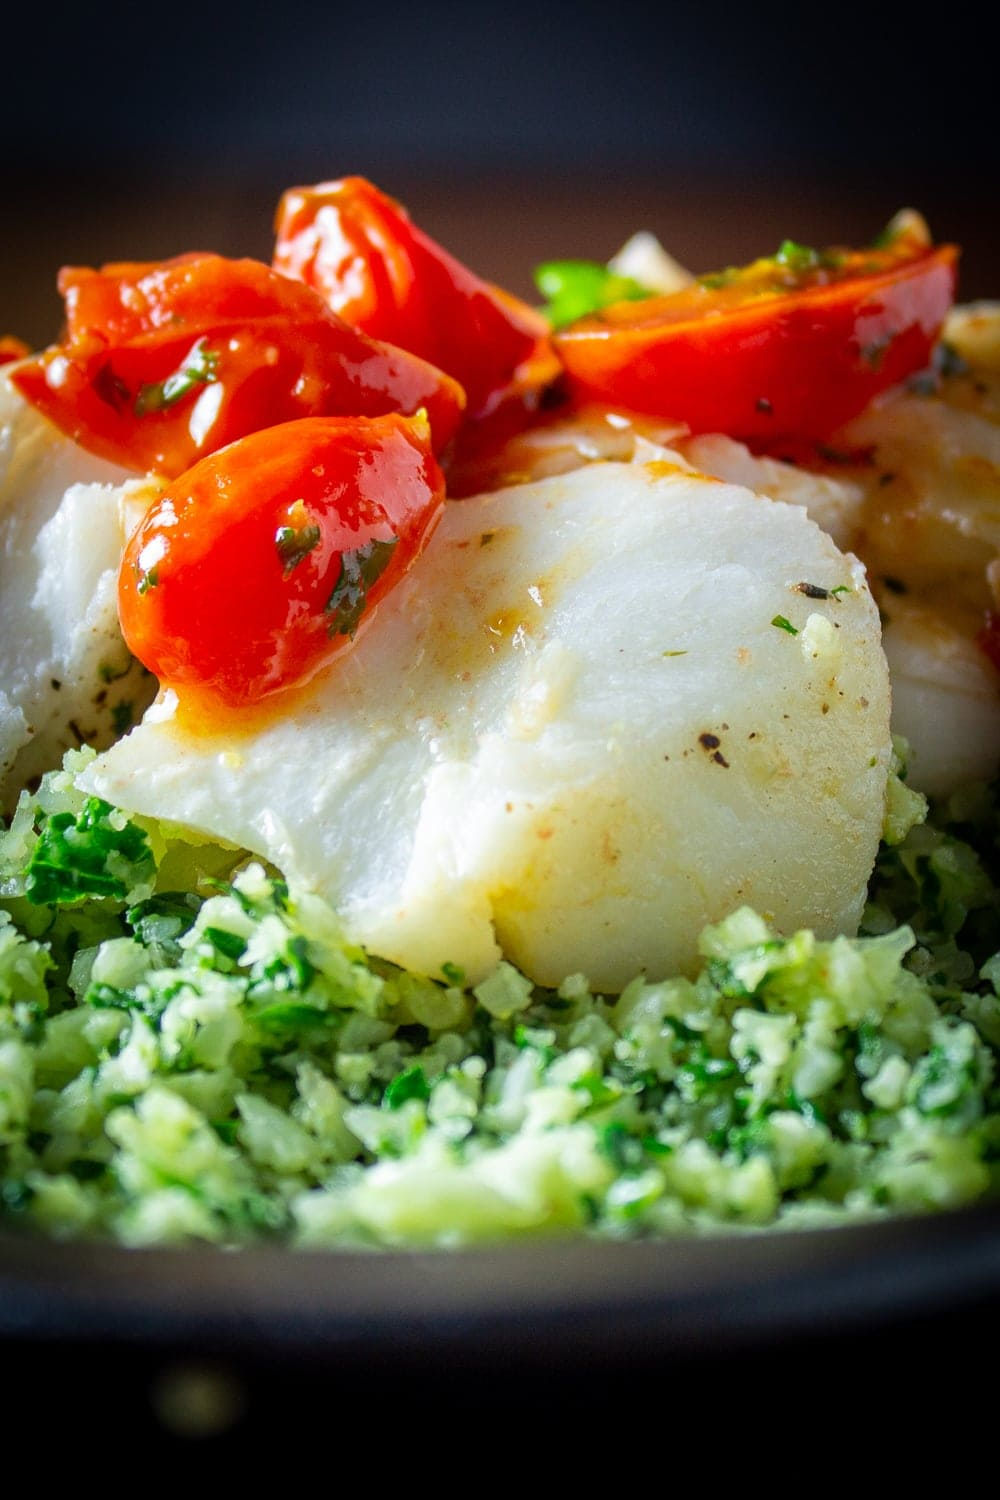 baked cod fillets covered with cherry tomato sauce over cauliflower spinach rice p3